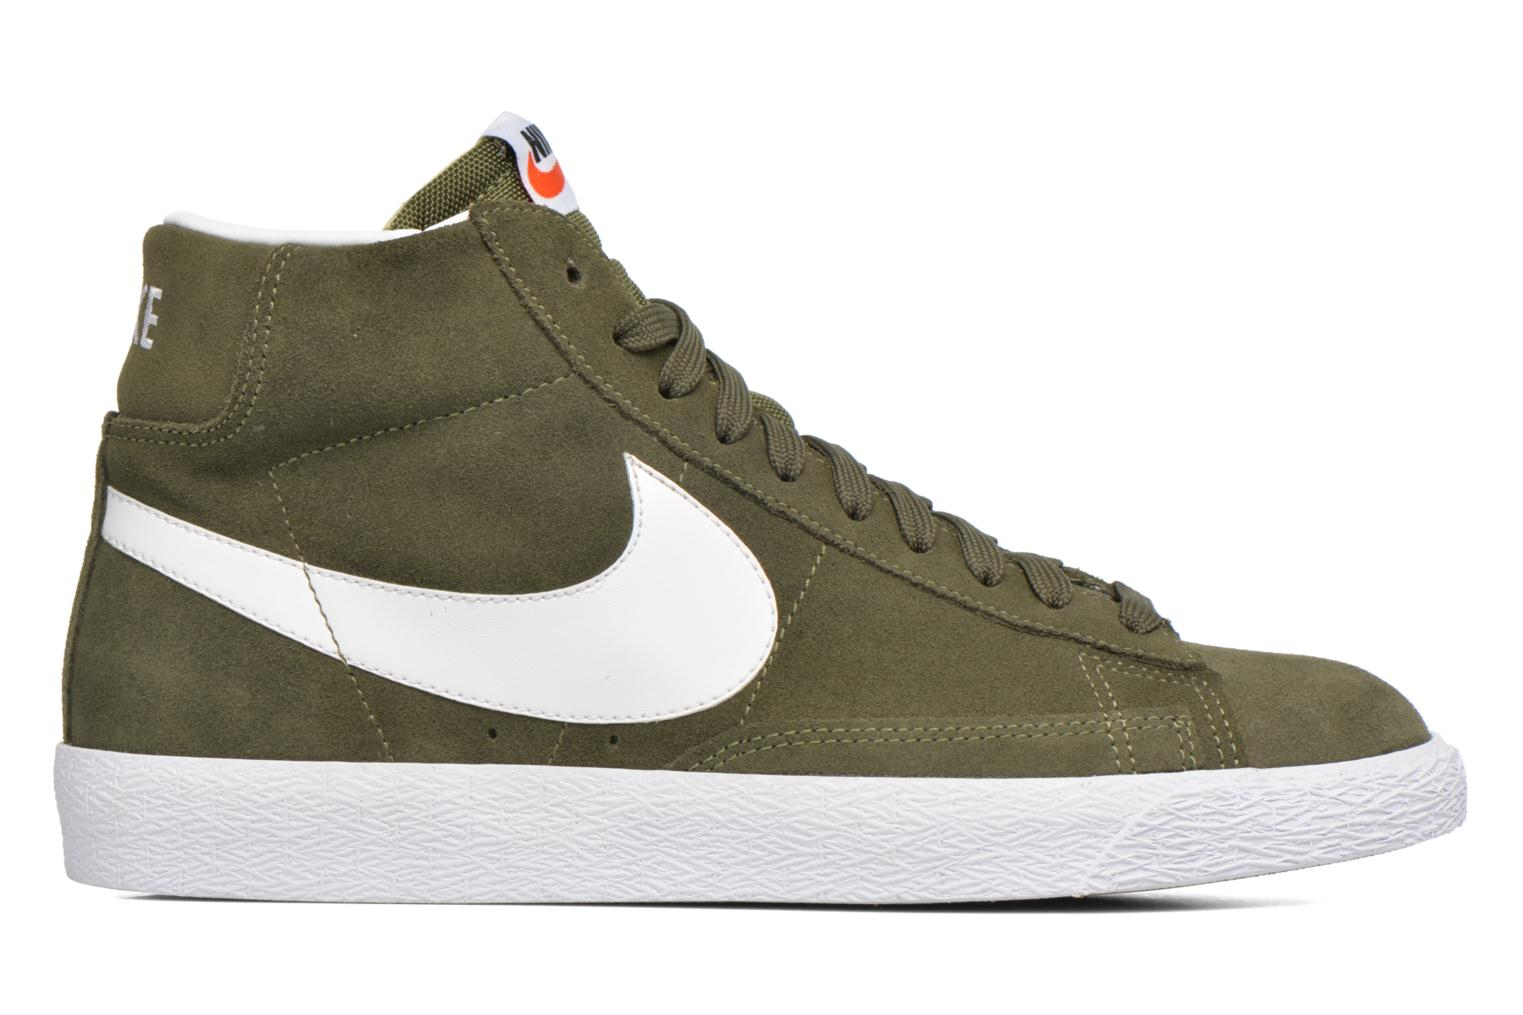 Blazer mid prm Urban Haze/White-White-Gum Light Brown